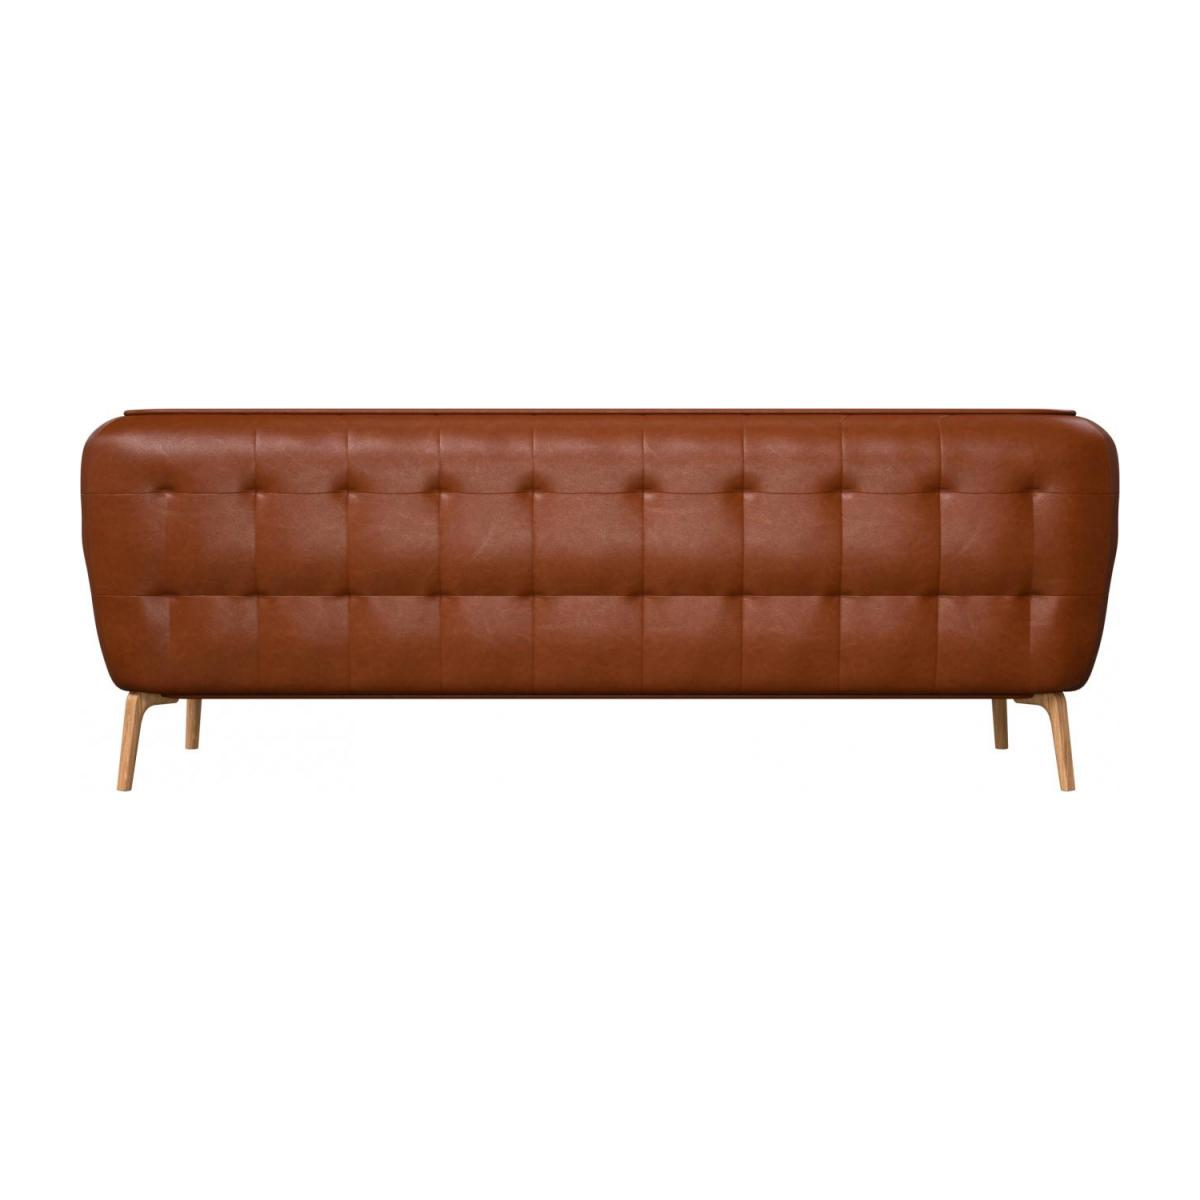 3 seater sofa in Vintage aniline leather, old chestnut and natural oak feet n°3